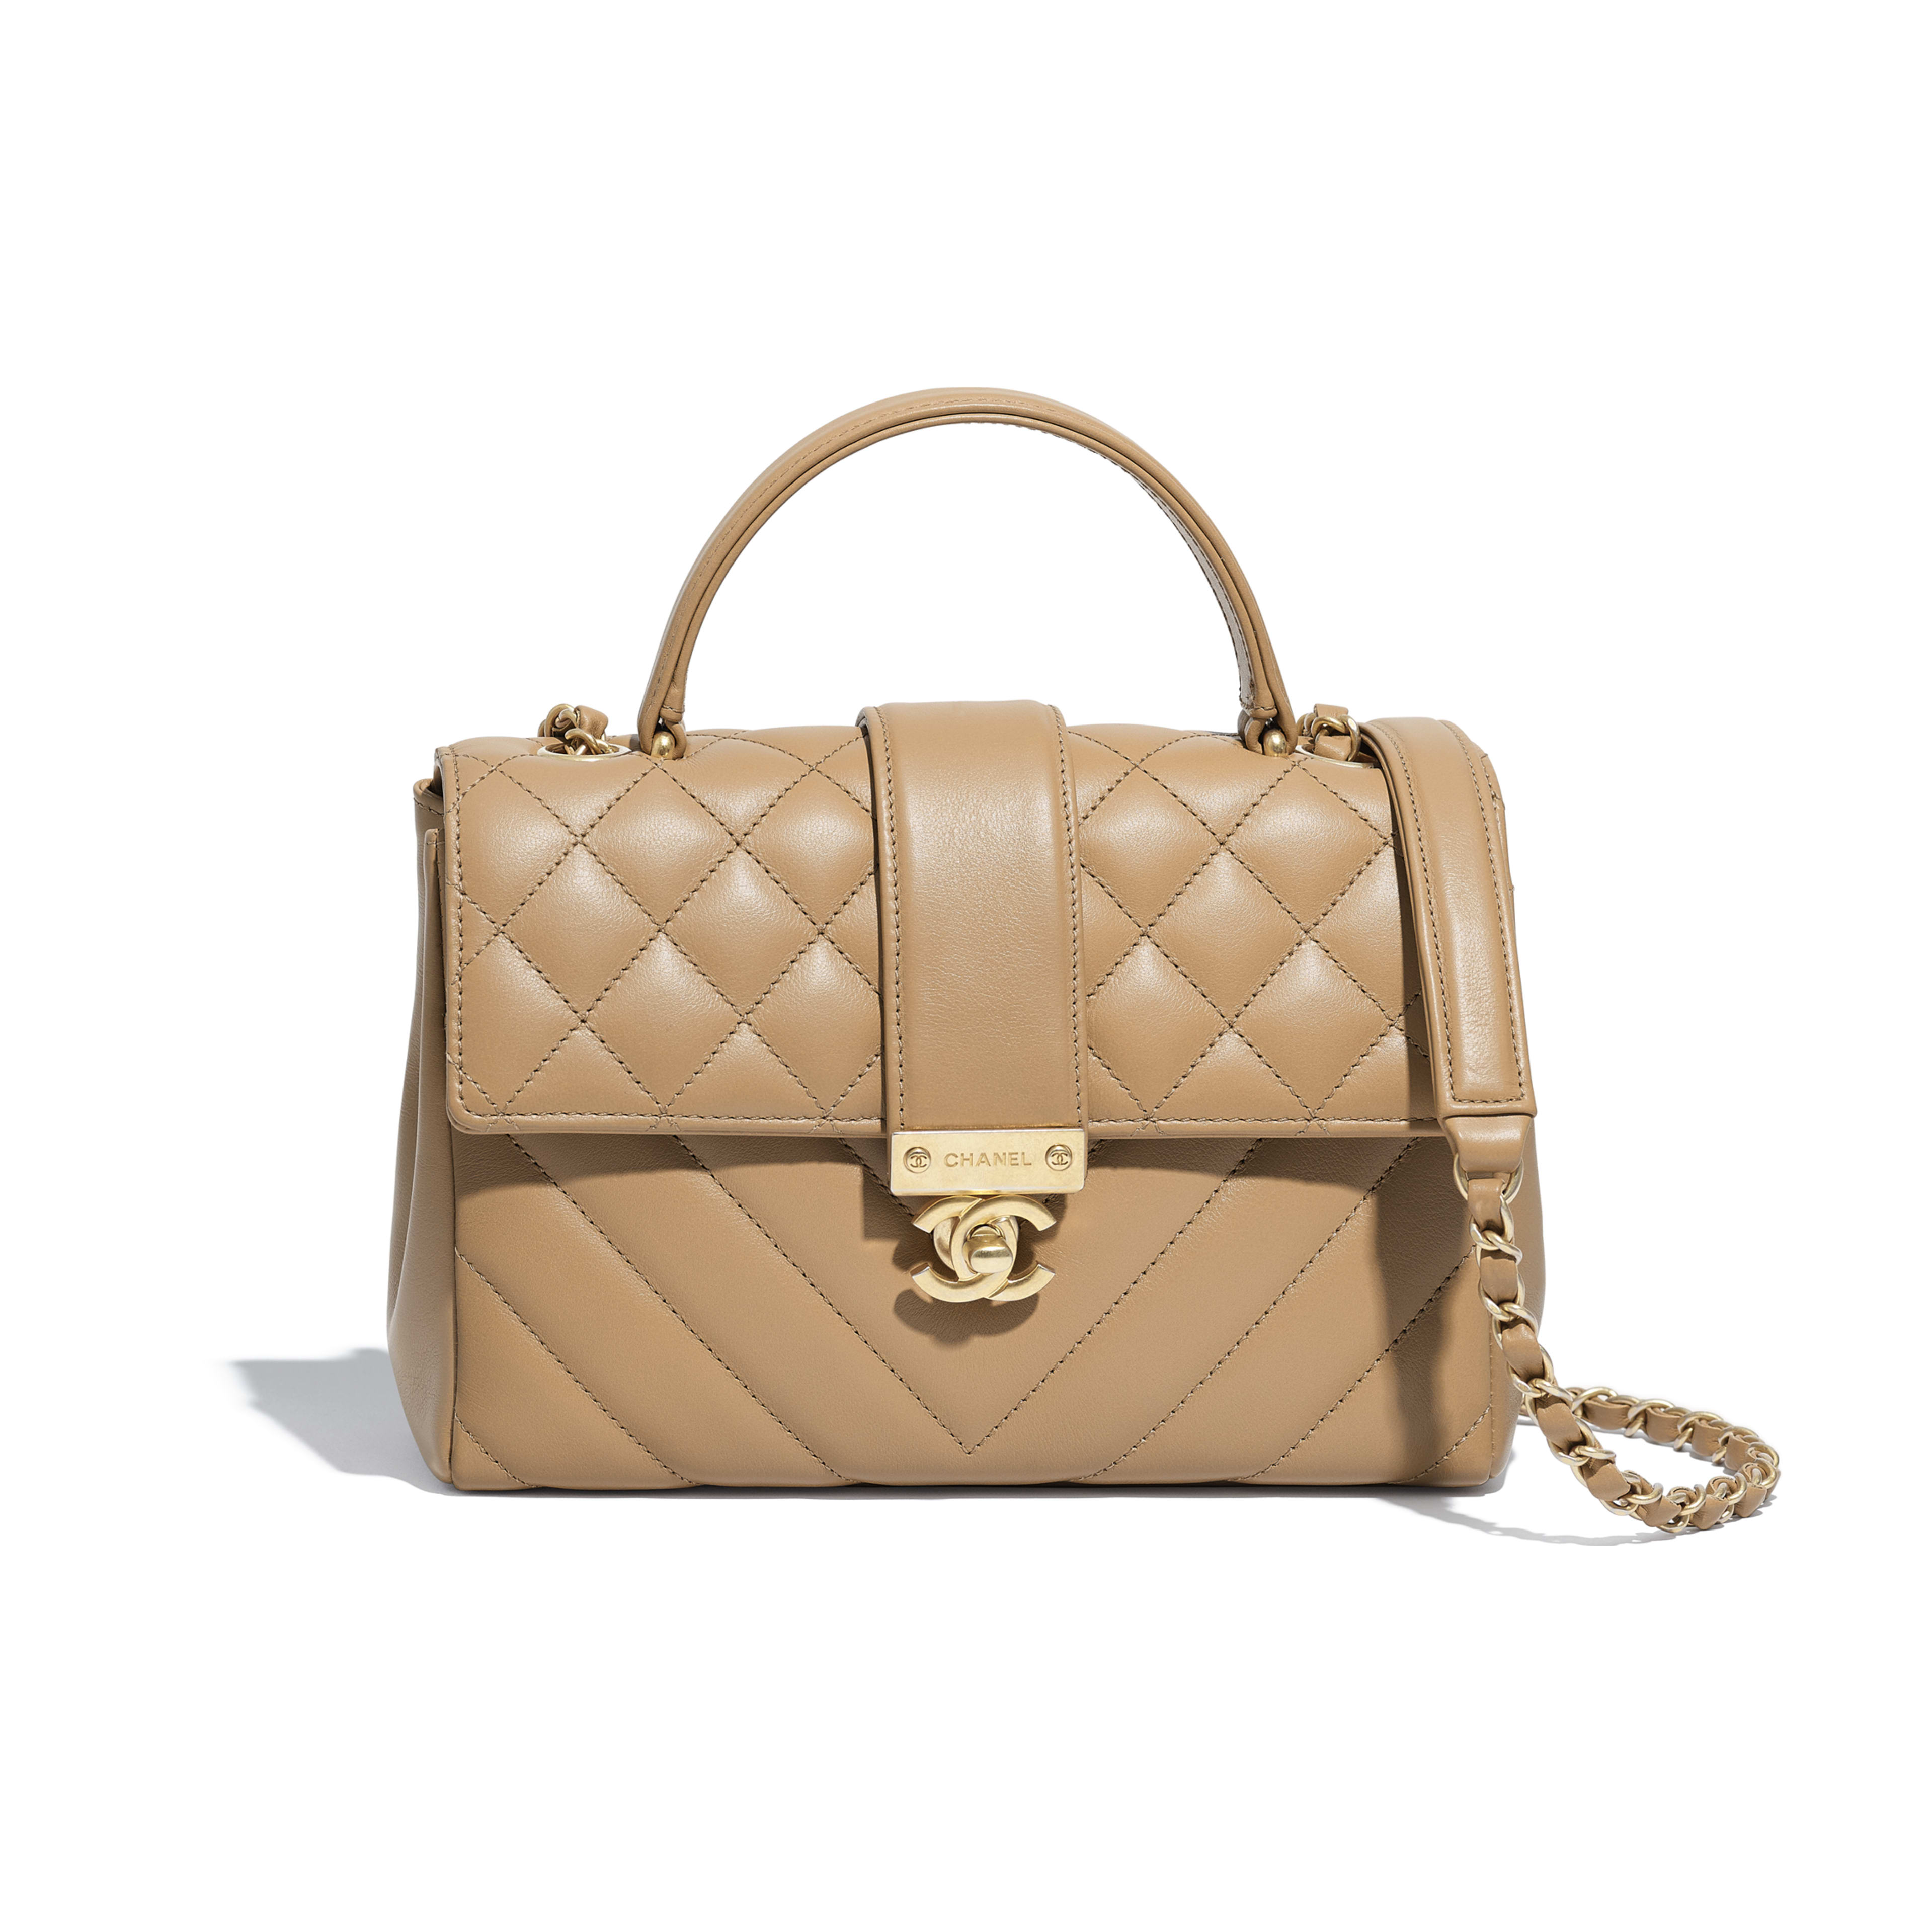 Flap Bag with Top Handle - Beige - Calfskin & Gold-Tone Metal - Default view - see full sized version